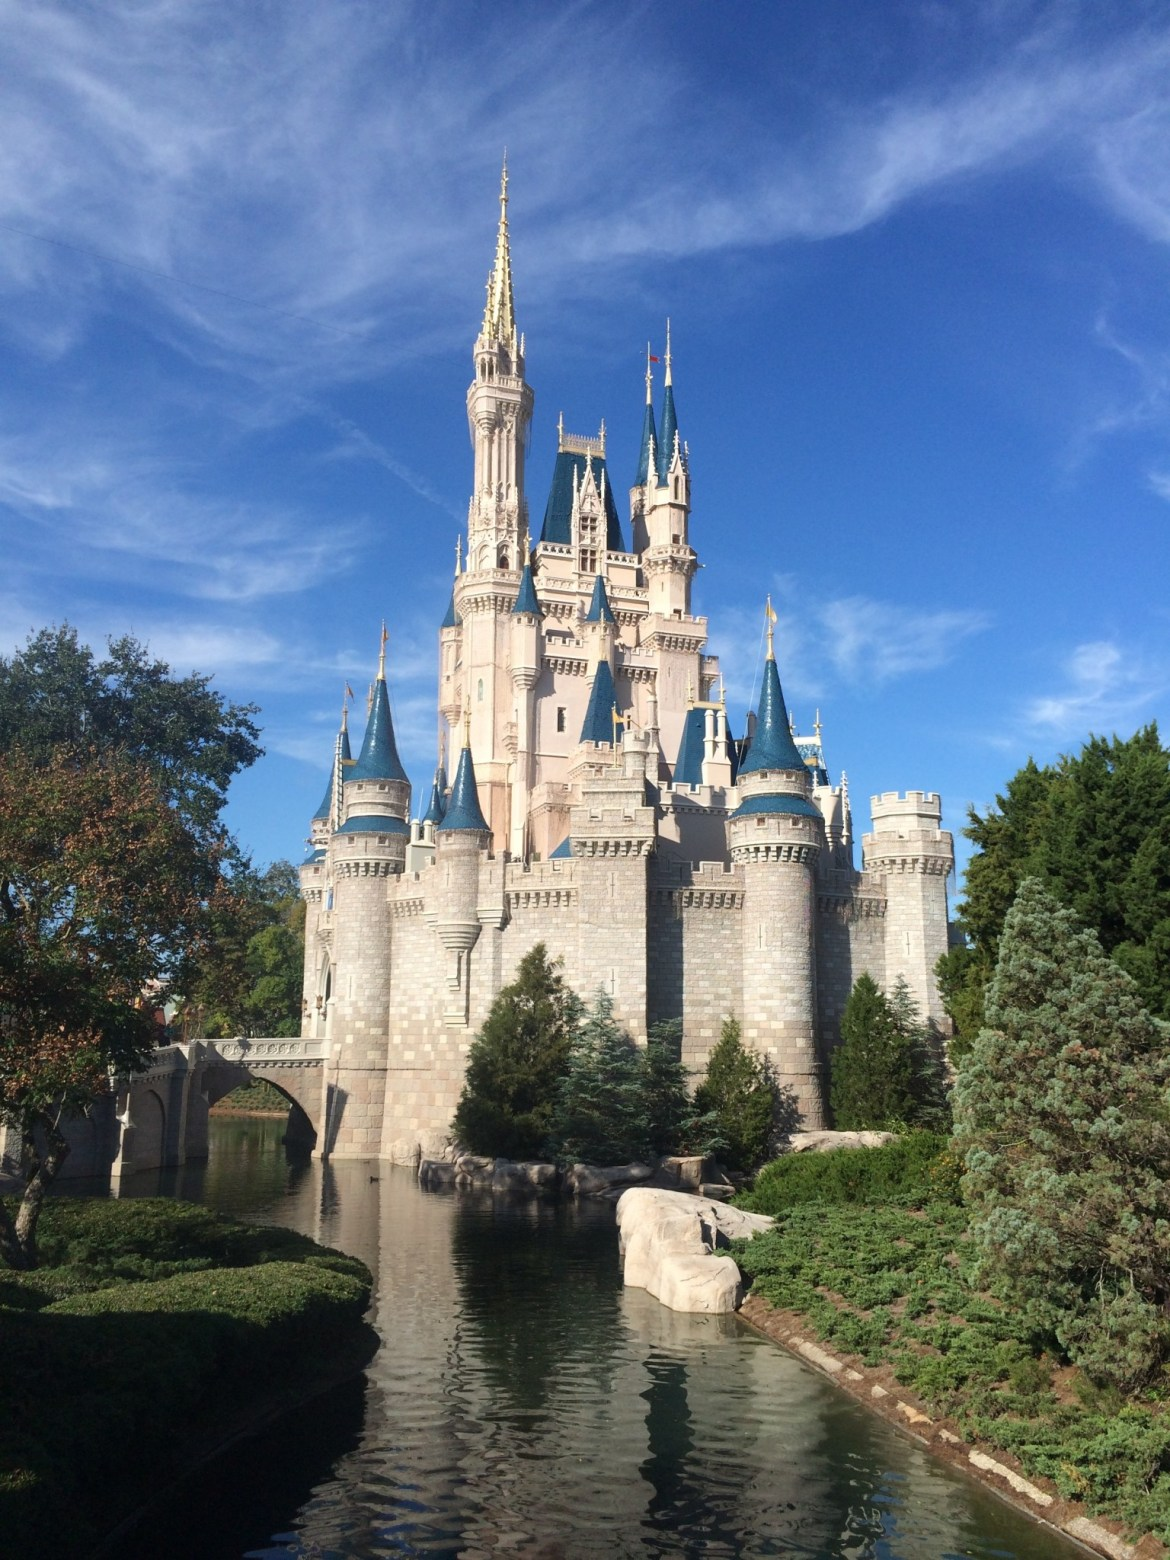 Premium Disney World Services – Guest Convenience or Money-Making Opportunity?